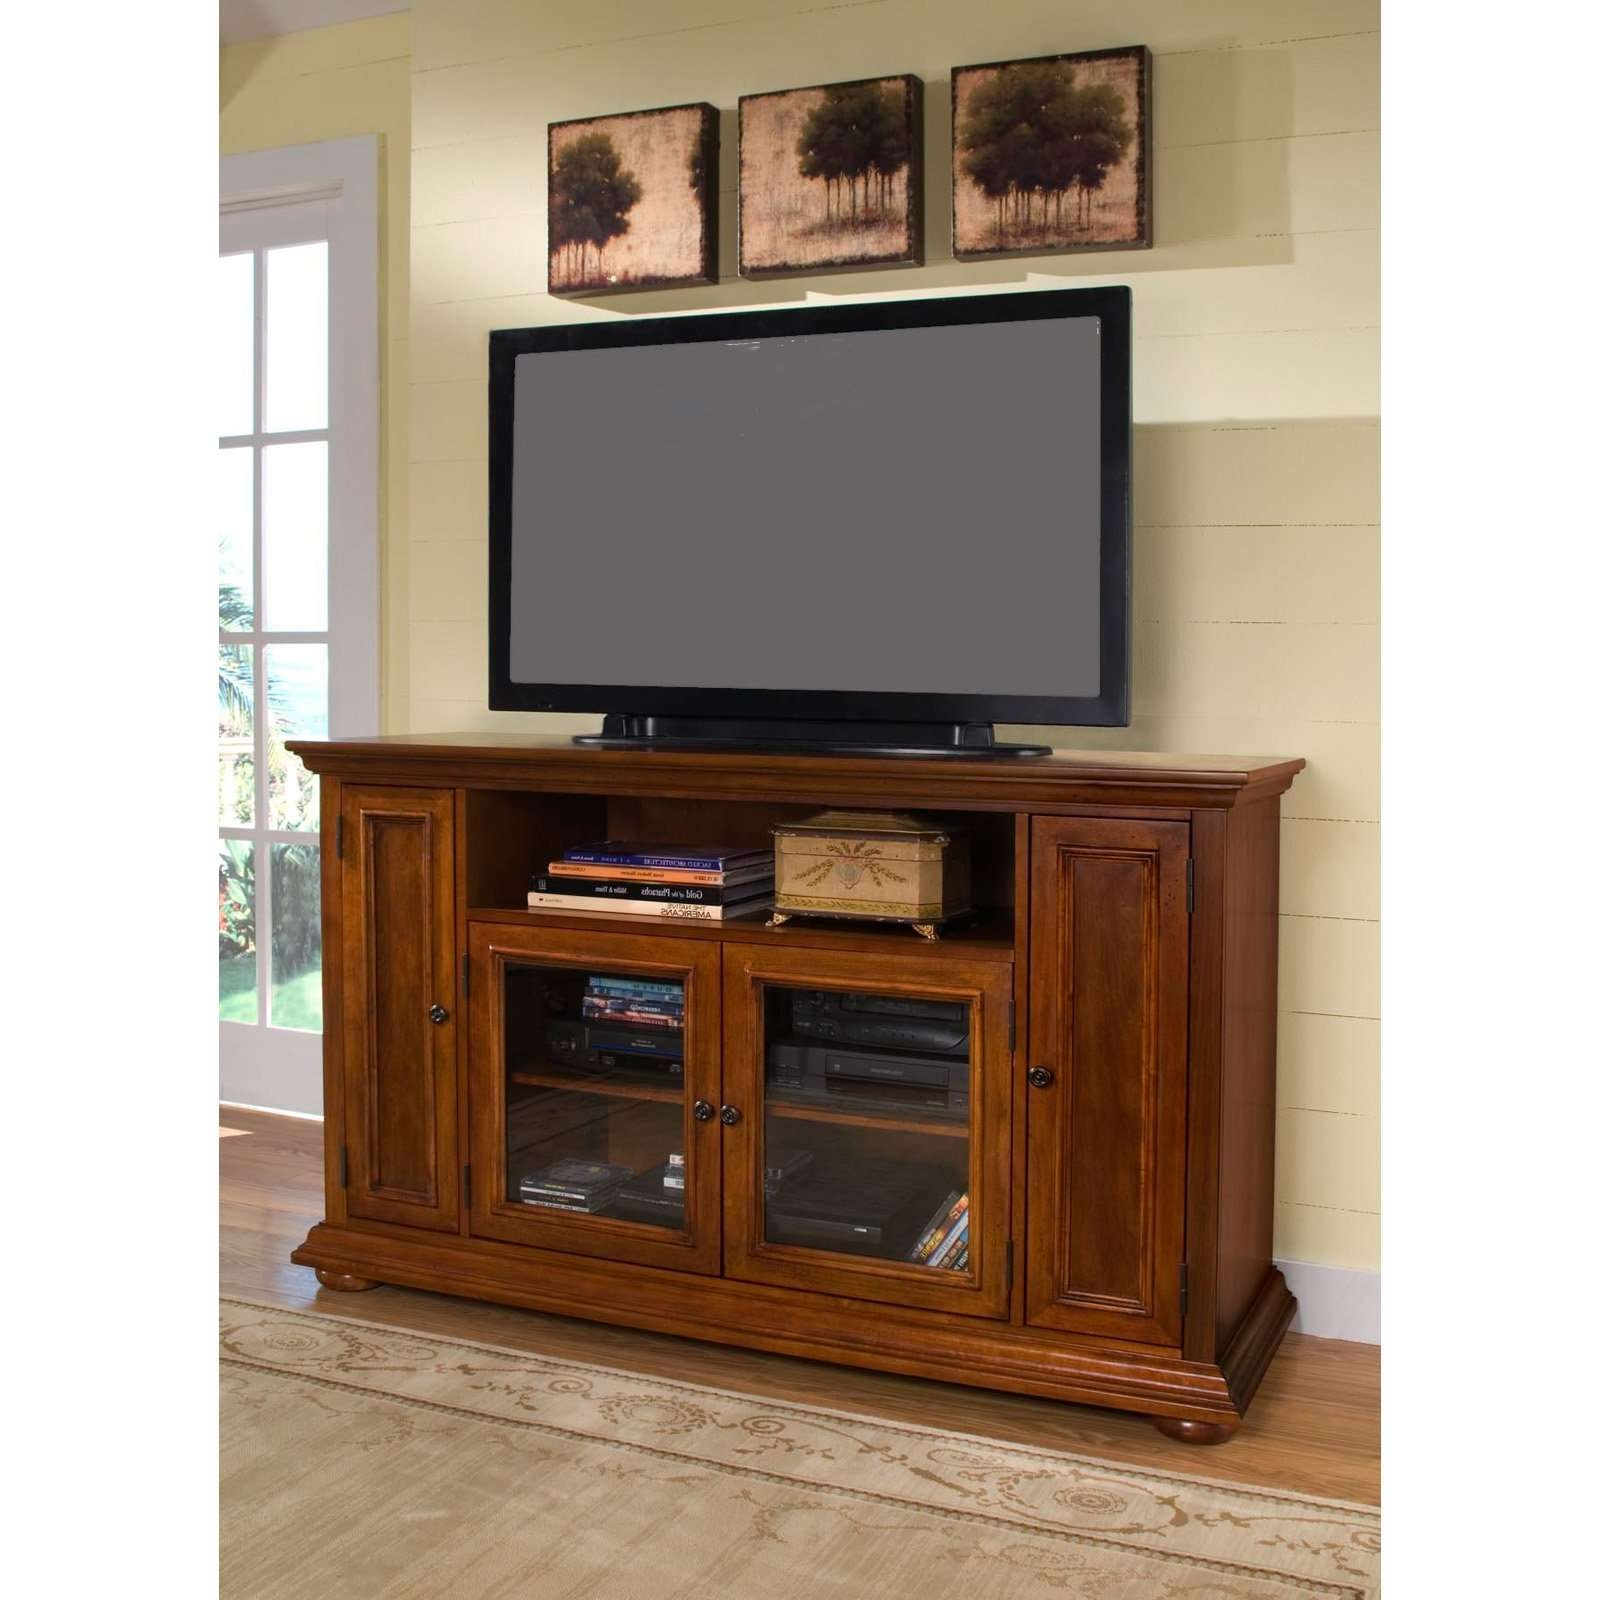 Home Decor: Marvelous Wood Tv Stands For Flat Screens Plus Light In Light Oak Tv Stands Flat Screen (View 5 of 15)